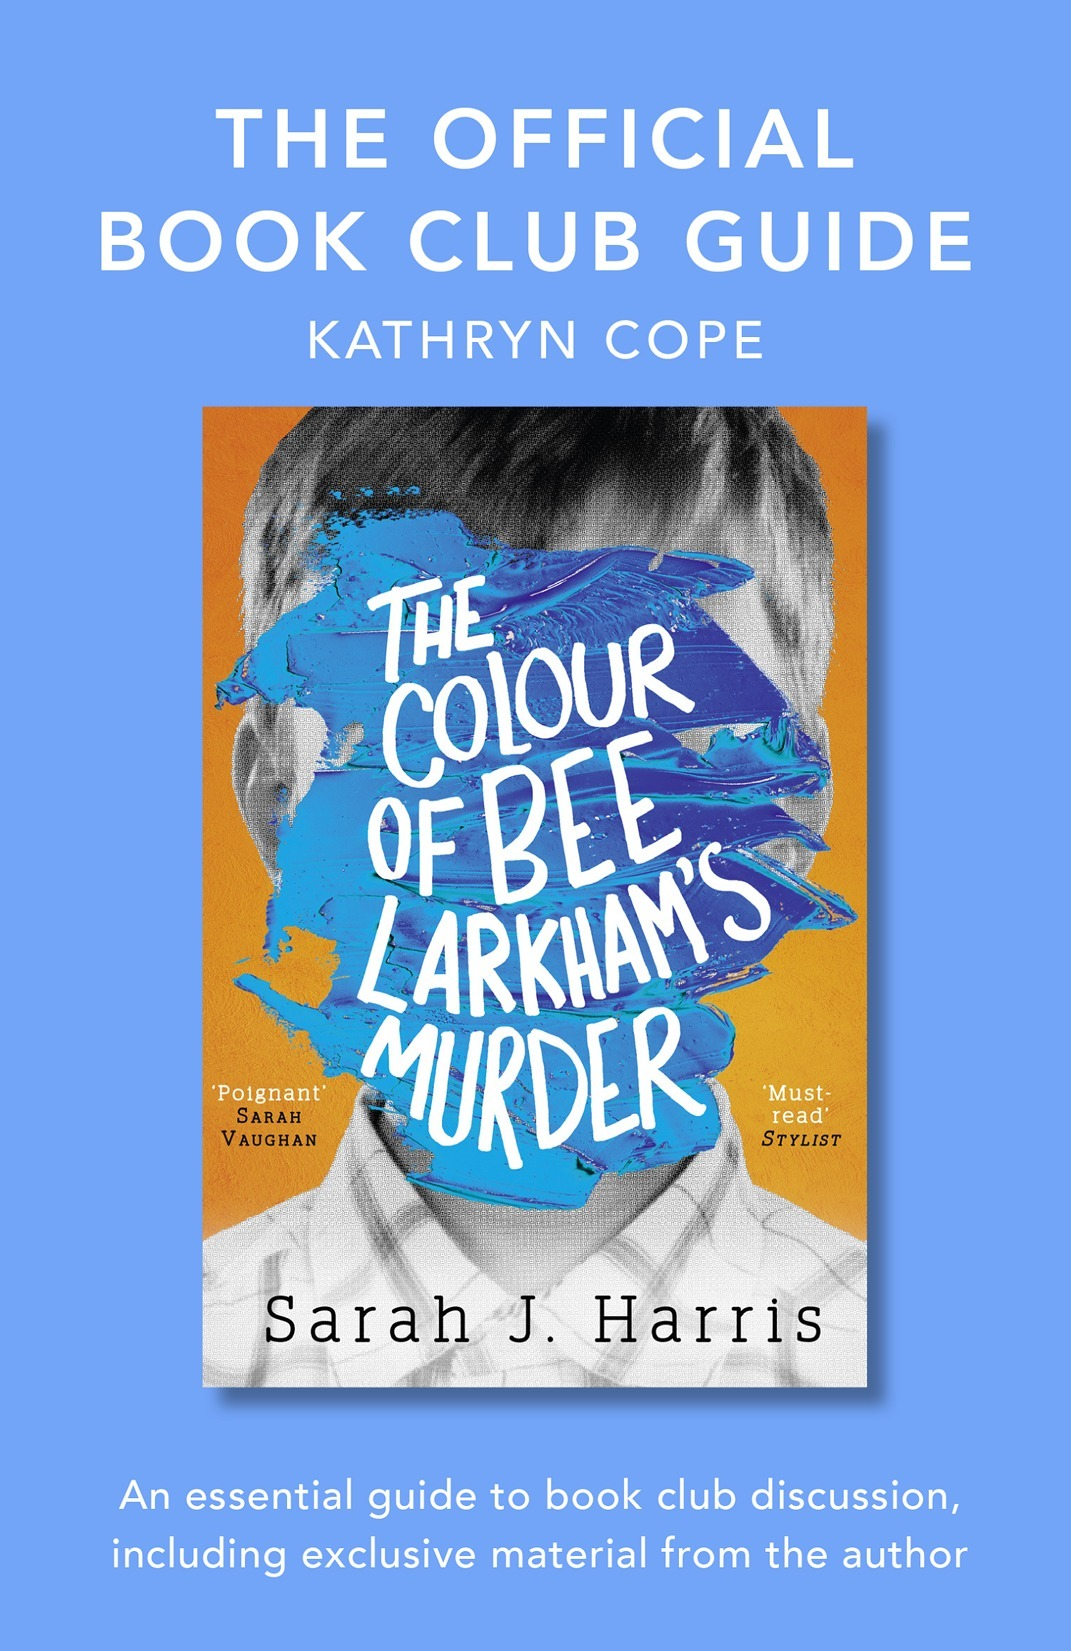 Kathryn Cope The Official Book Club Guide: The Colour of Bee Larkham's Murder world of warriors official guide